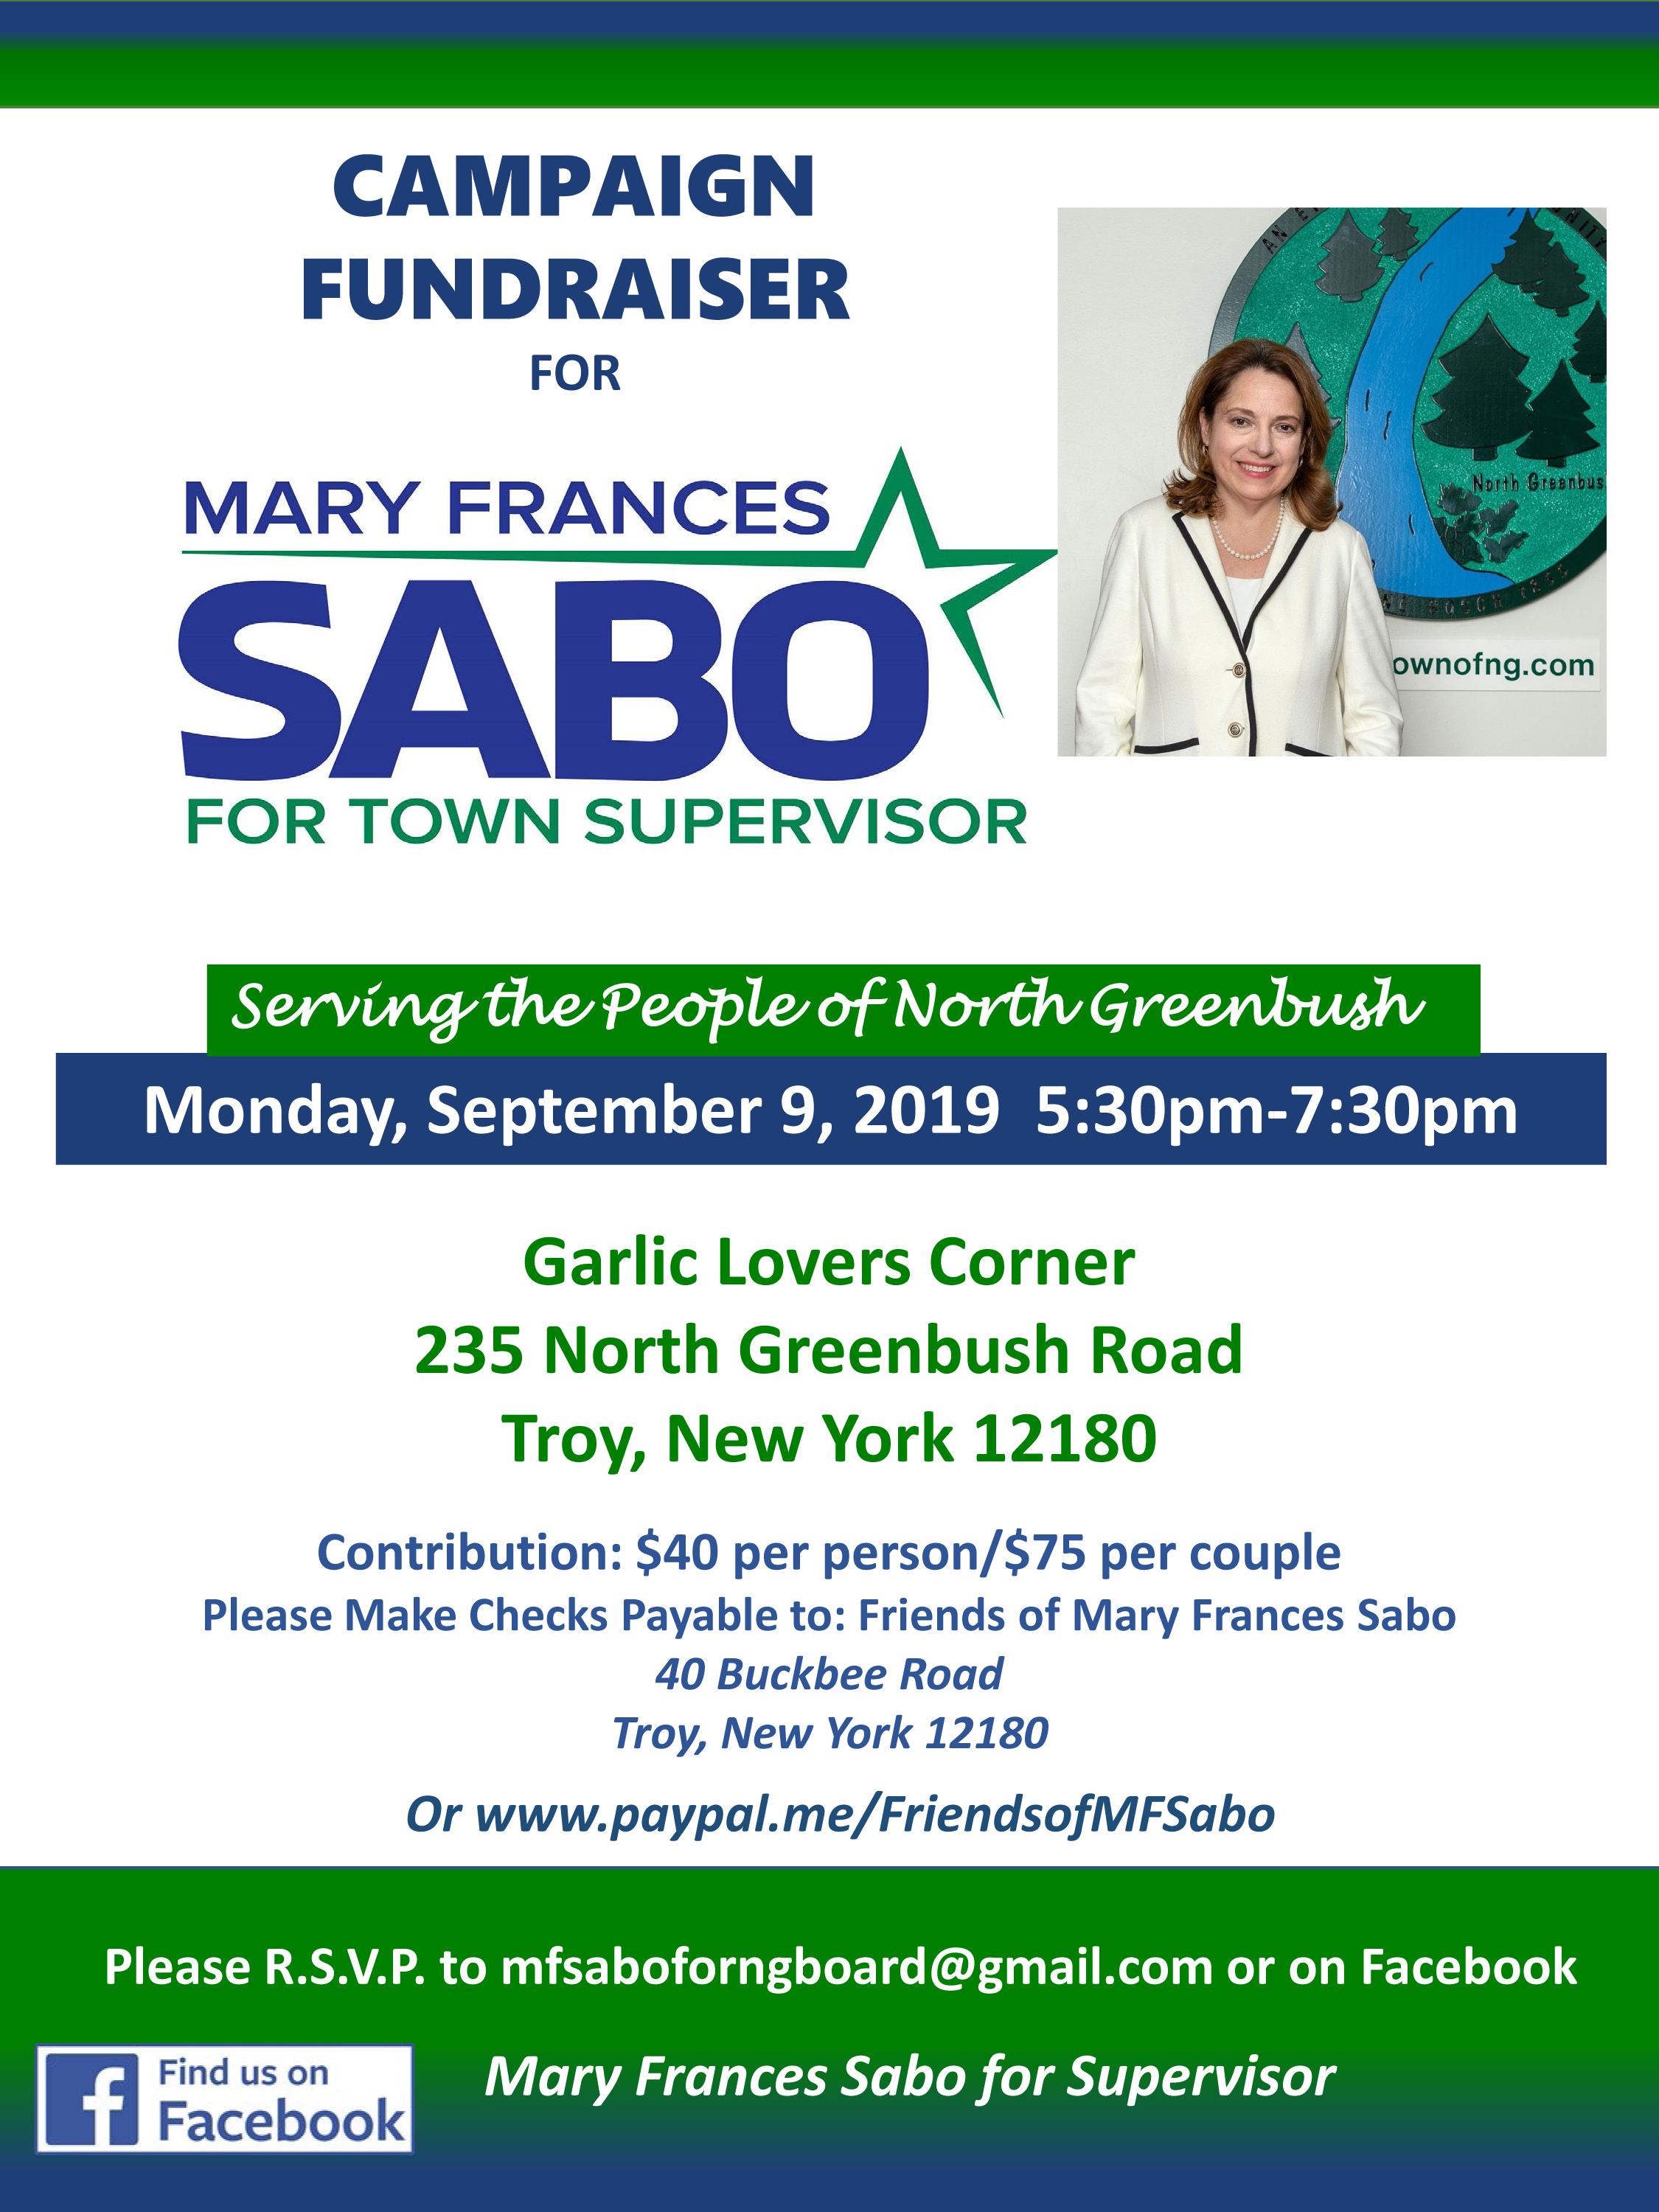 Mary Frances Sabo Sept 9 Fundraiser.jpg